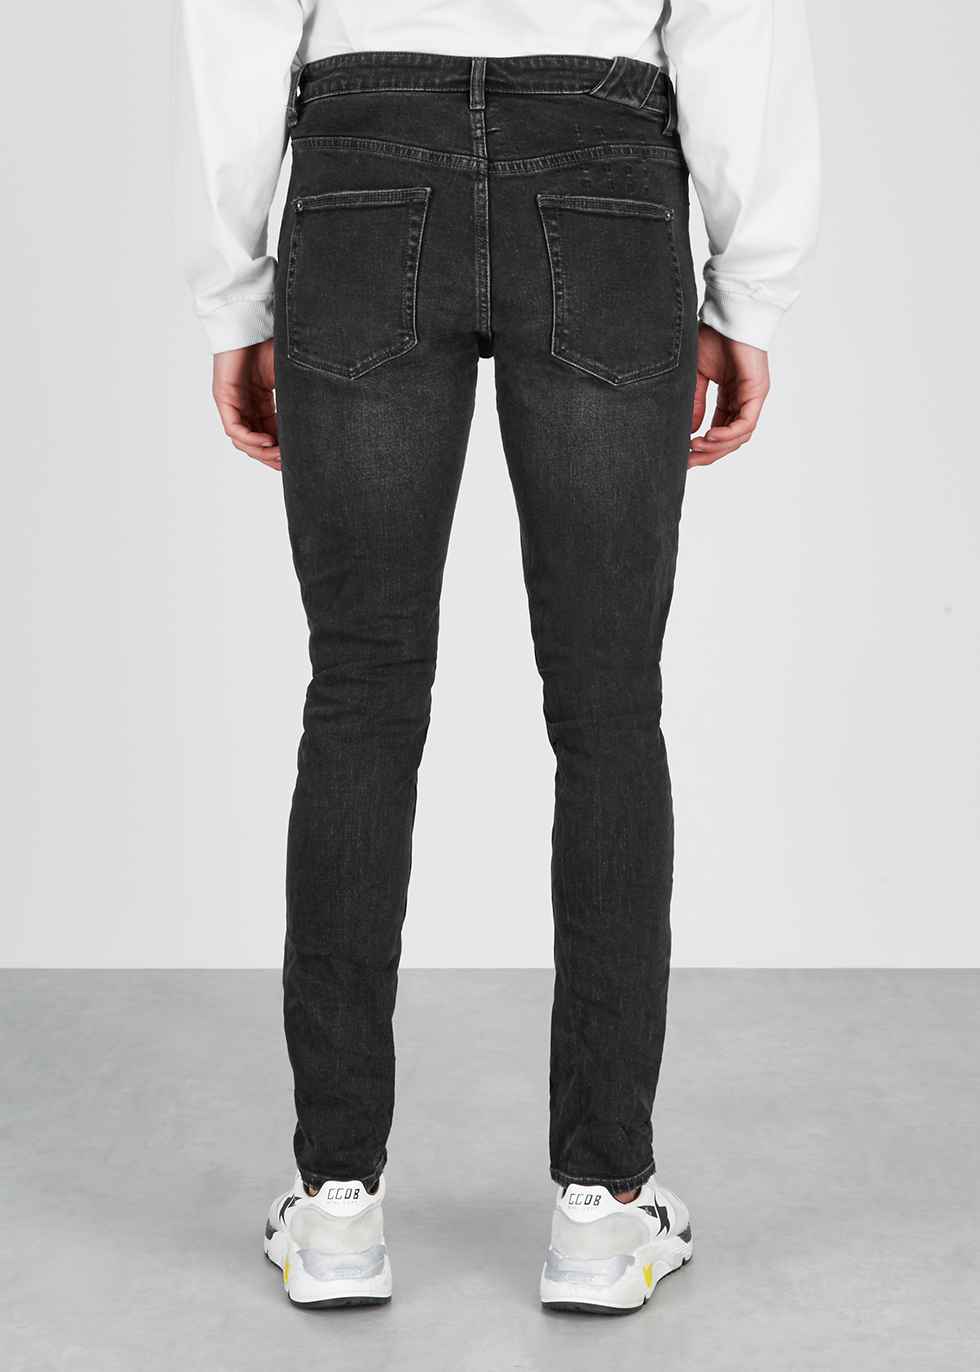 Chitch black tapered-leg jeans - ksubi